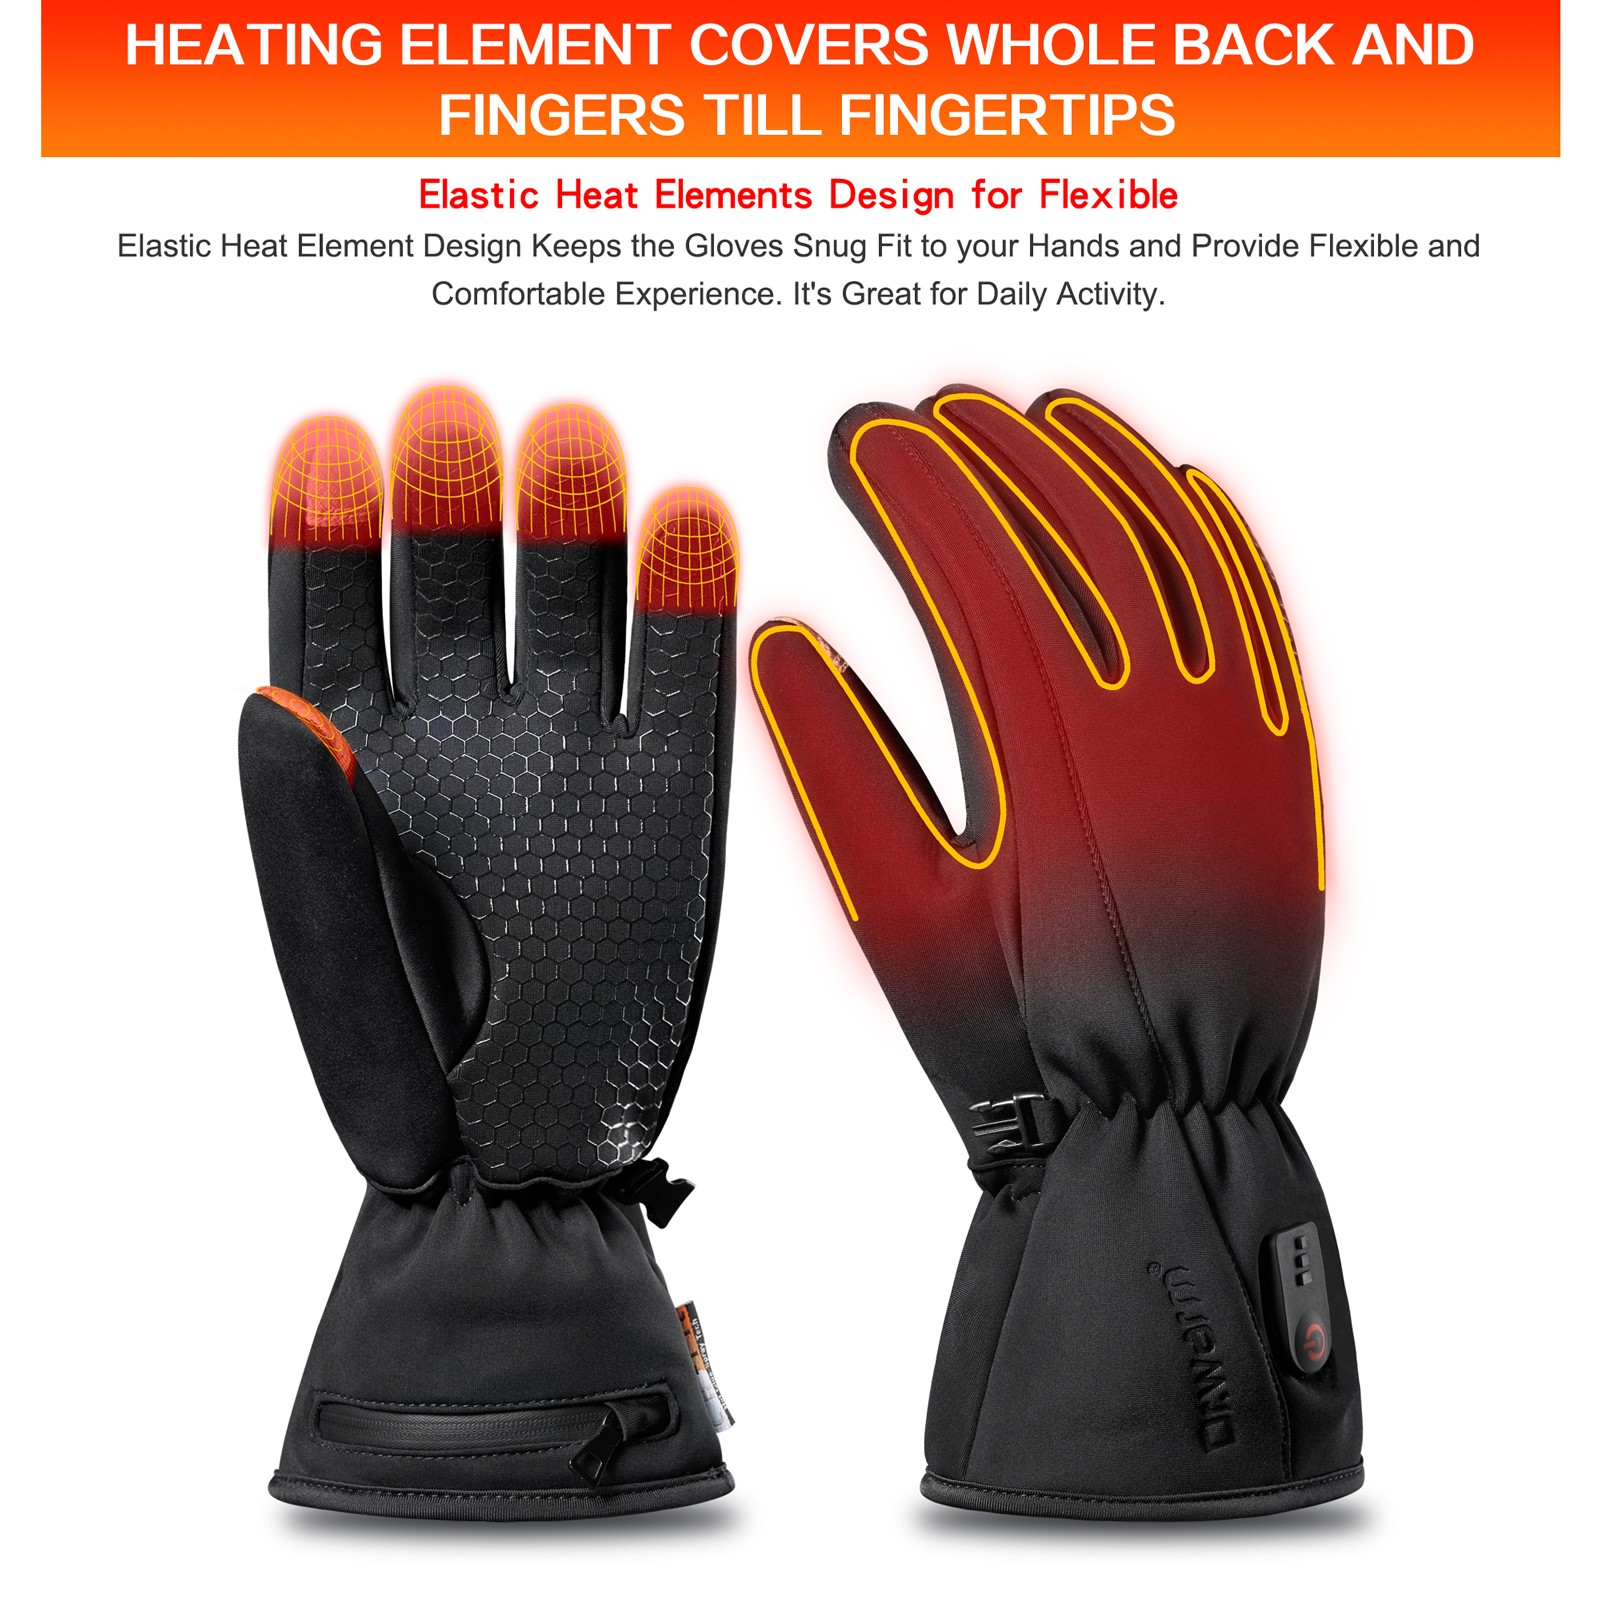 Dr. Warm winter electrical hand gloves for home-10